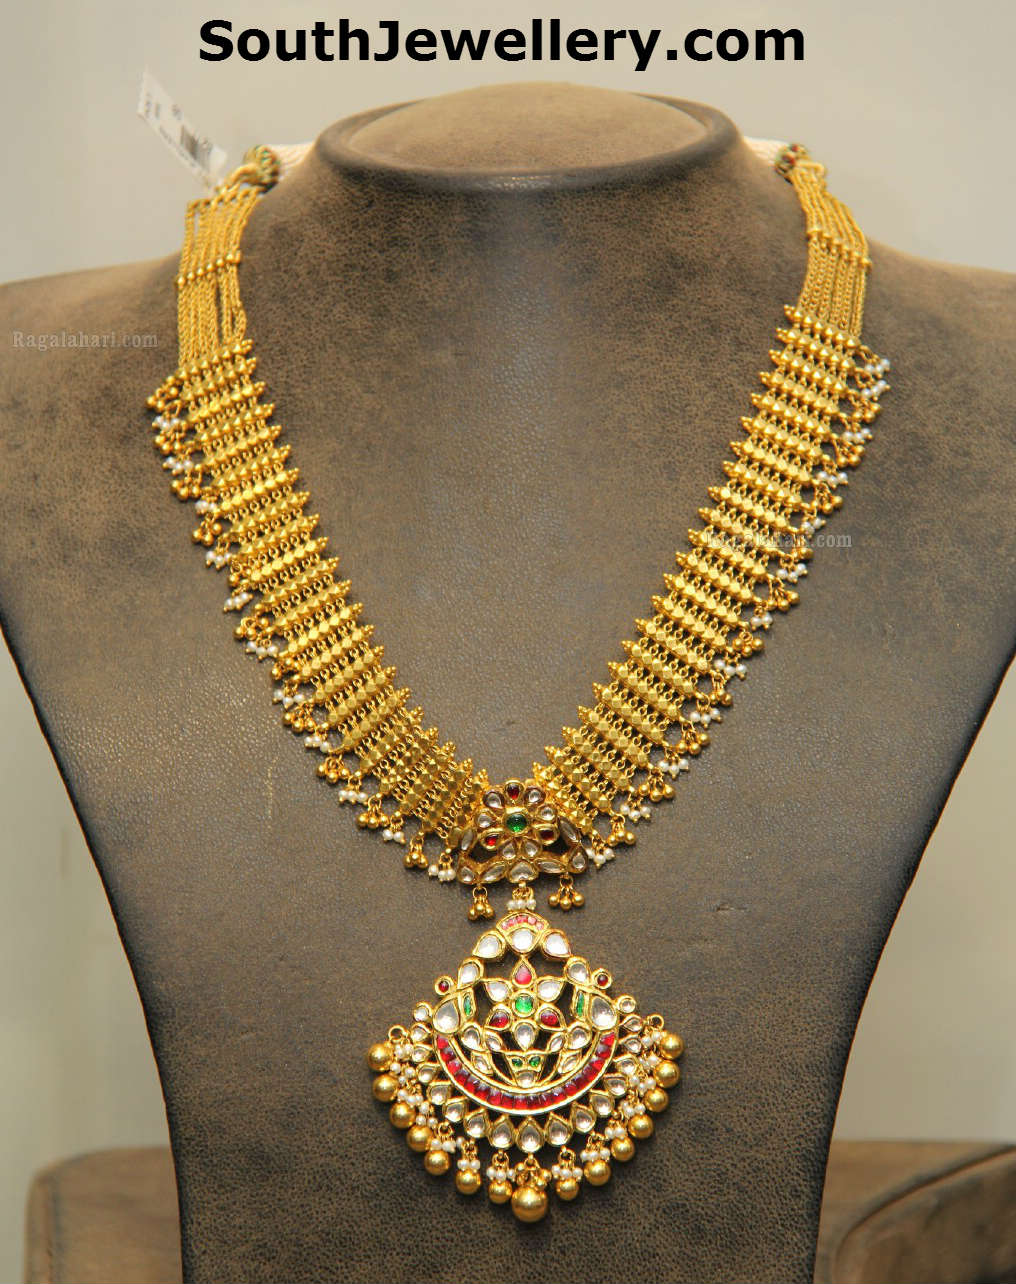 Classy Gold Necklace With Kundan Pendant Jewellery Designs